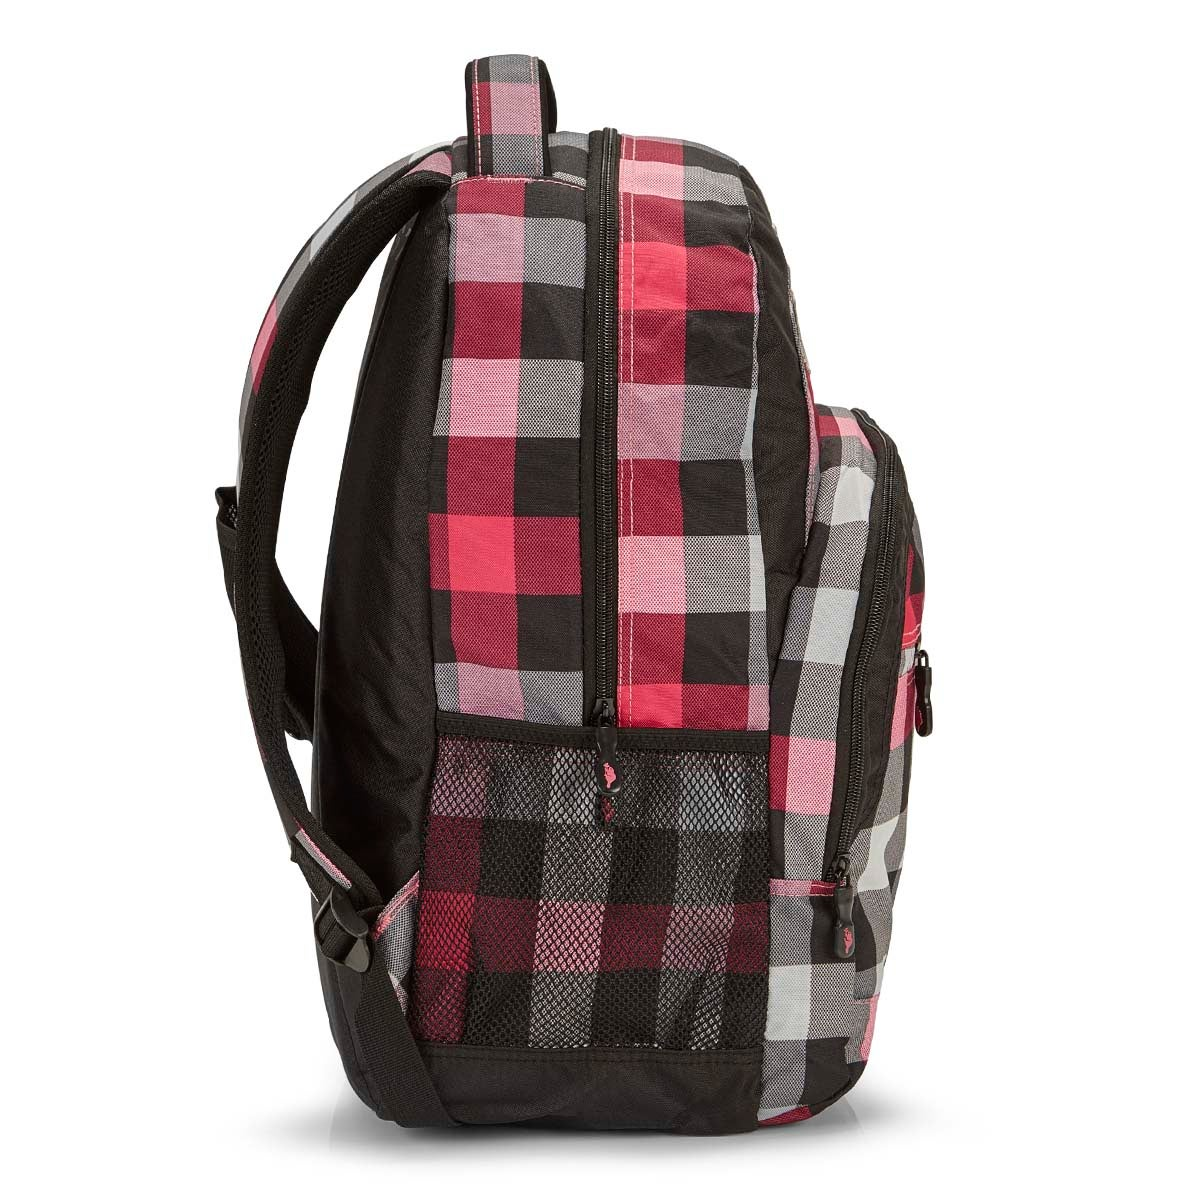 Lds Roots73 pink plaid backpack